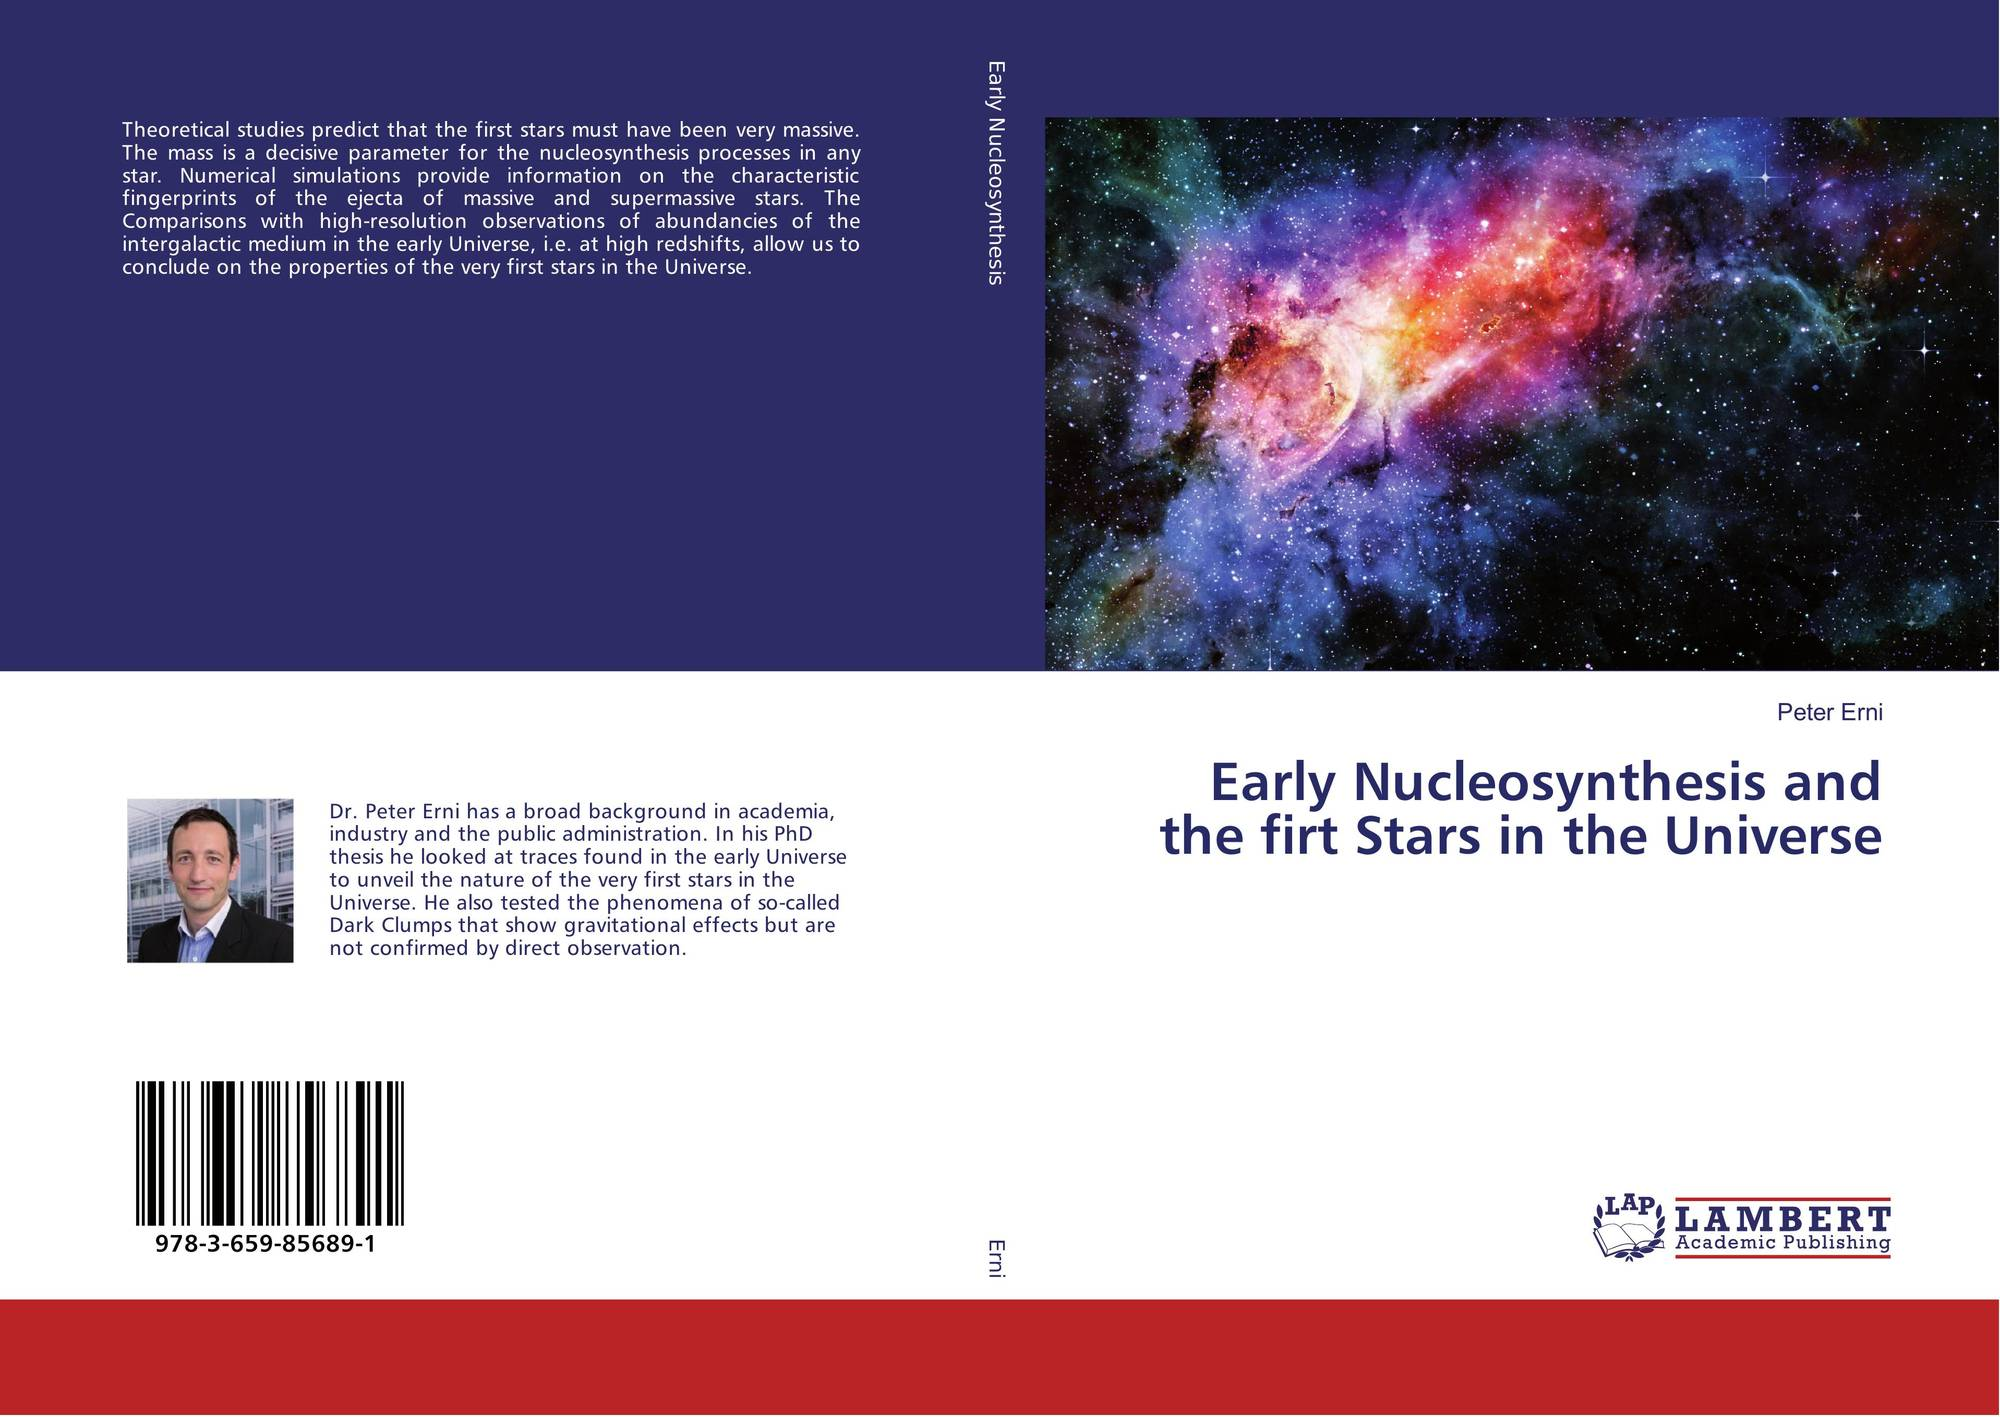 nucleosynthesis of stars The physics of stars by ac phillips (wiley, 2nd edition) is an excellent introduction to the physics of stars covering basic physics involved in their formation, evolution, and nucleosynthesis stellar evolution and nucleosynthesis by sg ryan and aj norton (the open university and cambridge university press, 2010.